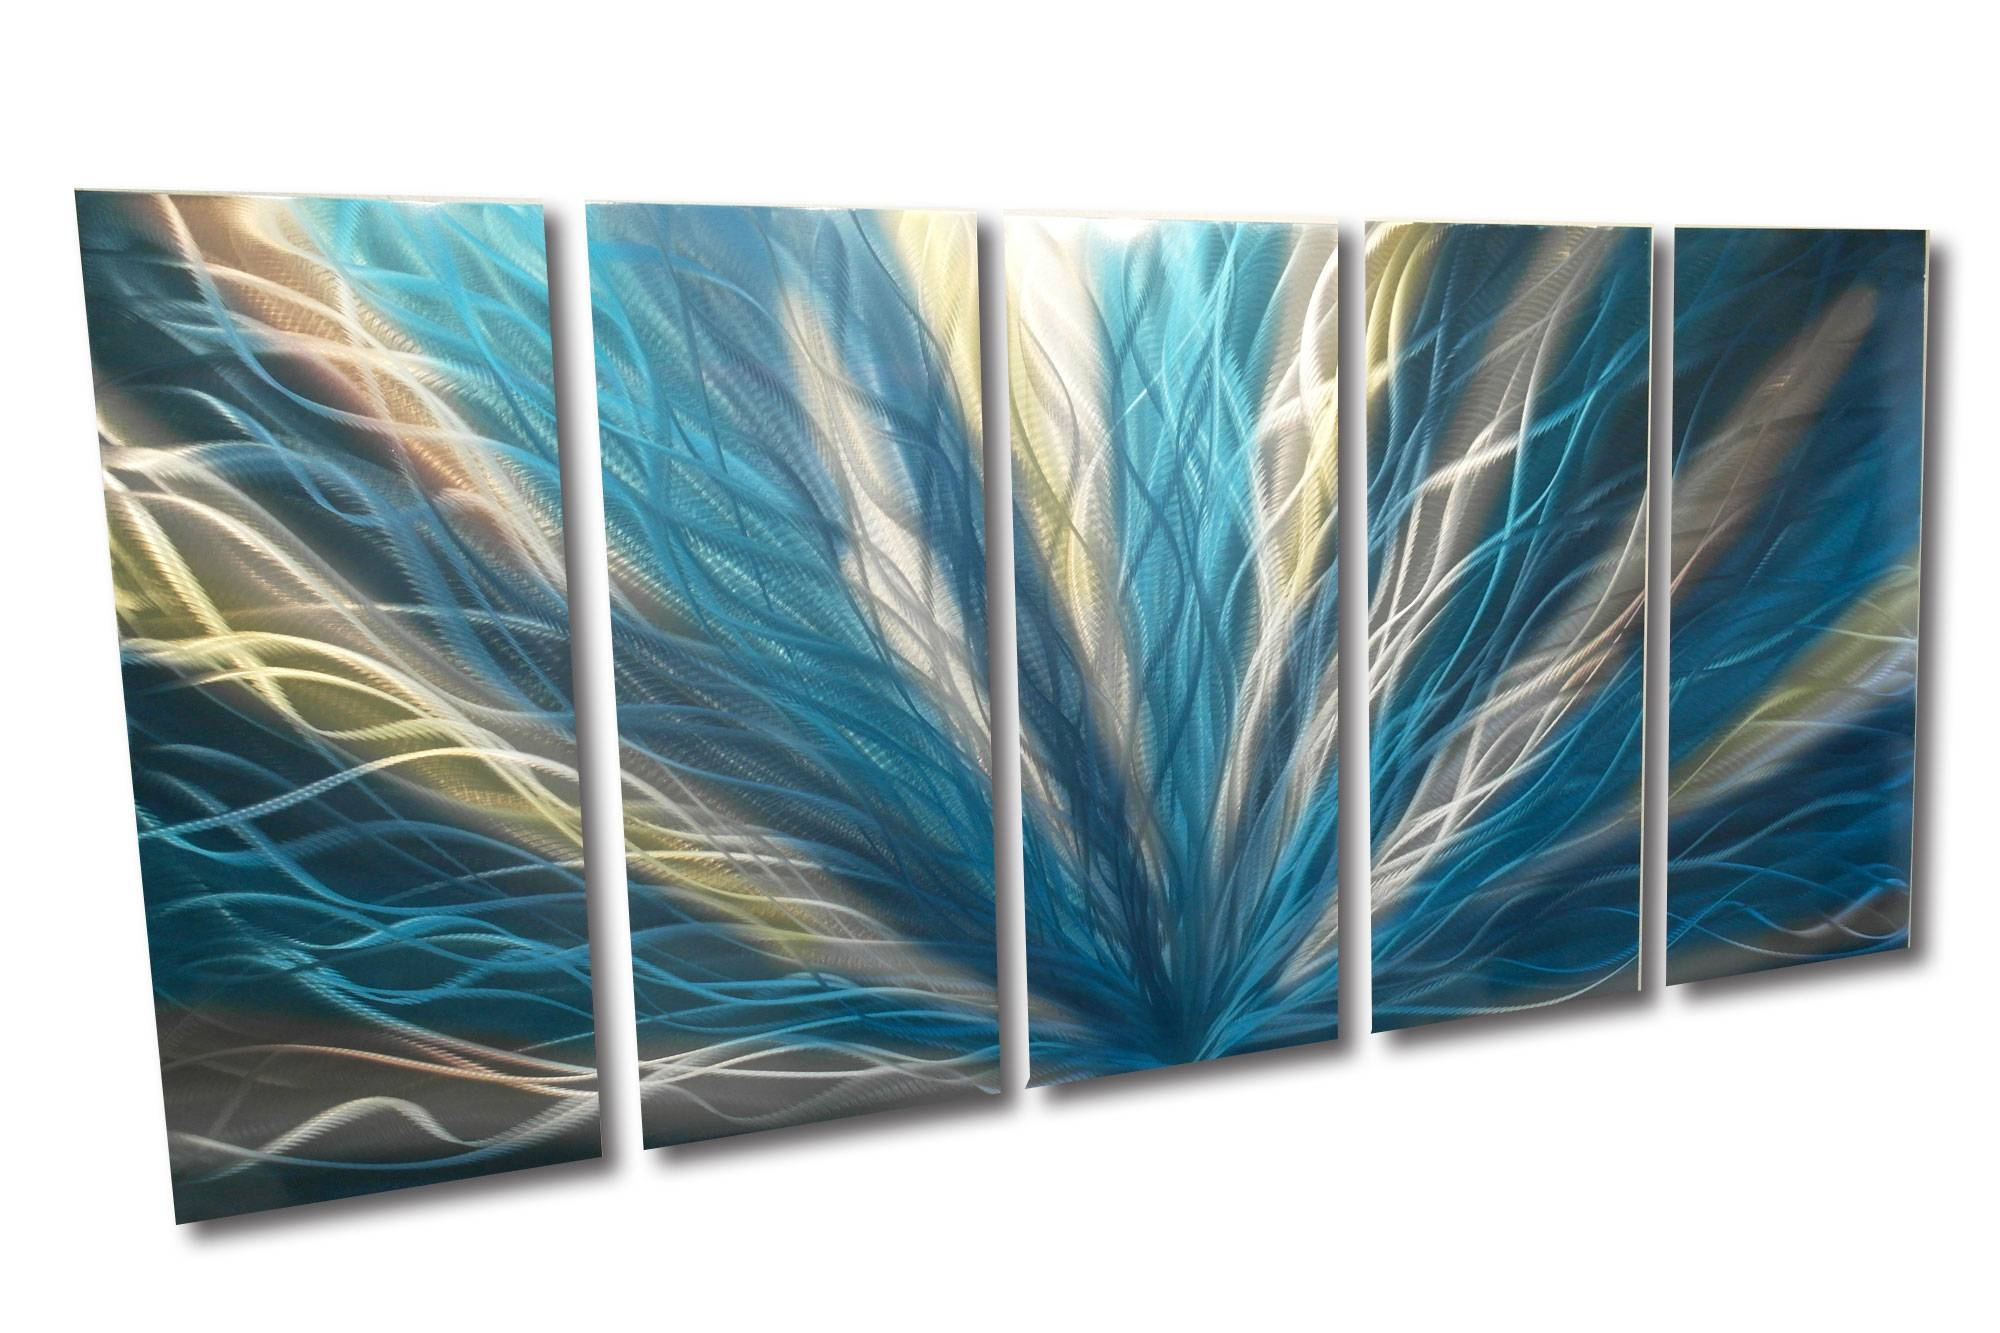 Radiance Teal 36x79 – Metal Wall Art Abstract Sculpture Modern Throughout Most Current Teal Metal Wall Art (View 4 of 20)